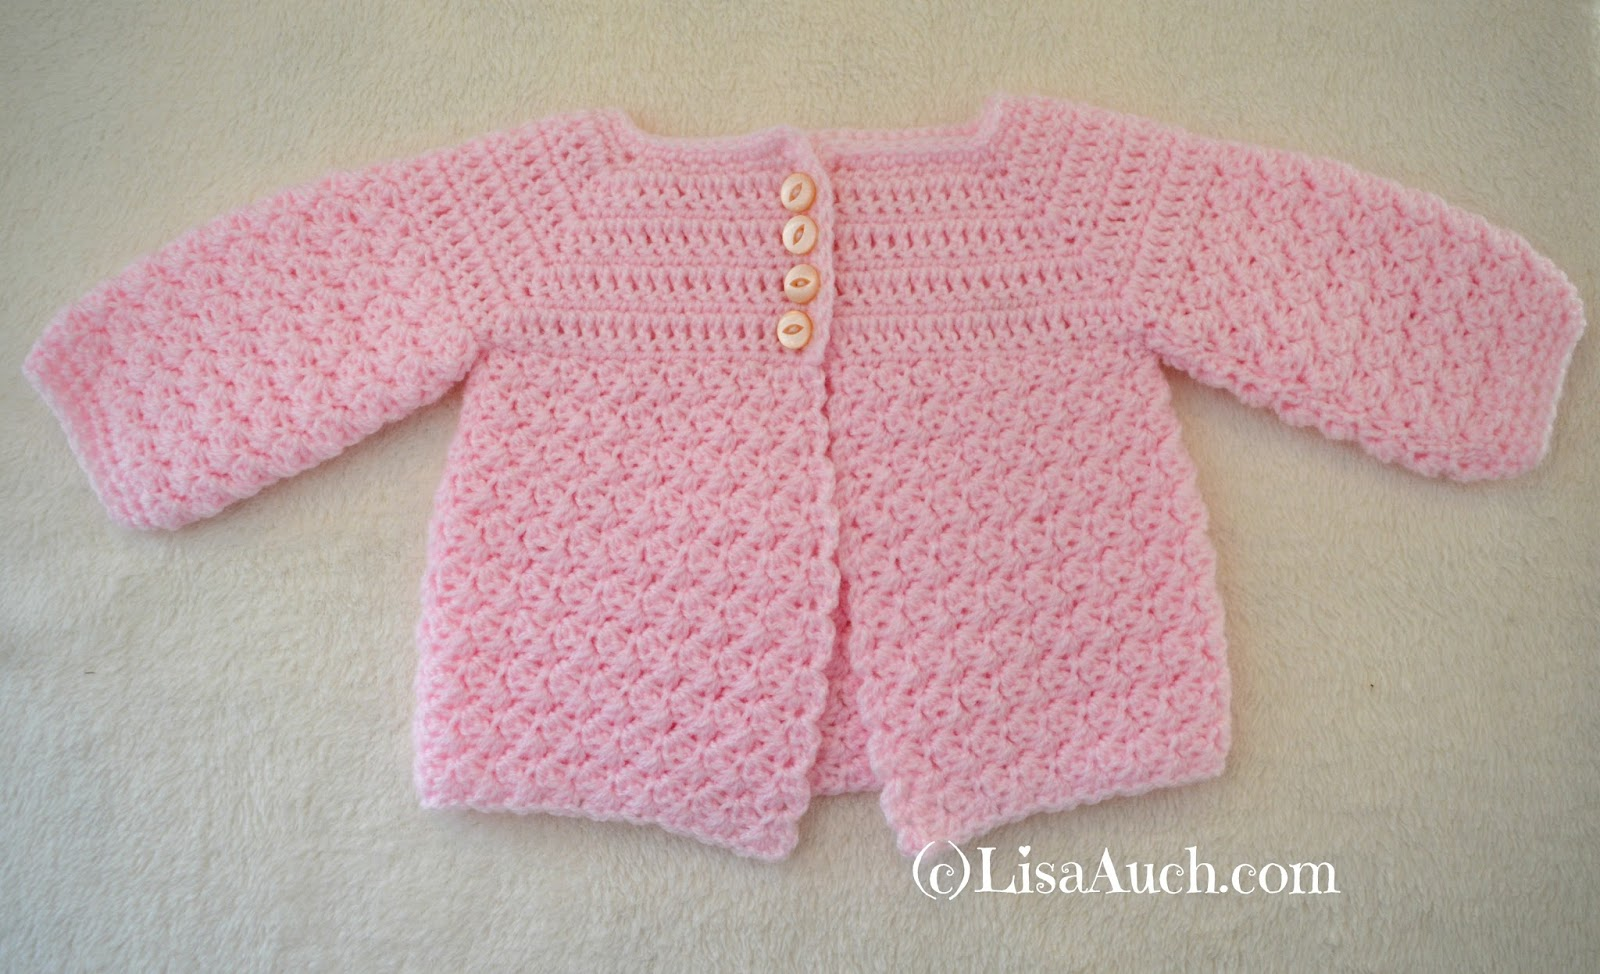 Crochet Baby Cardigan Easy Free Pattern | FREE Crochet Patterns ...